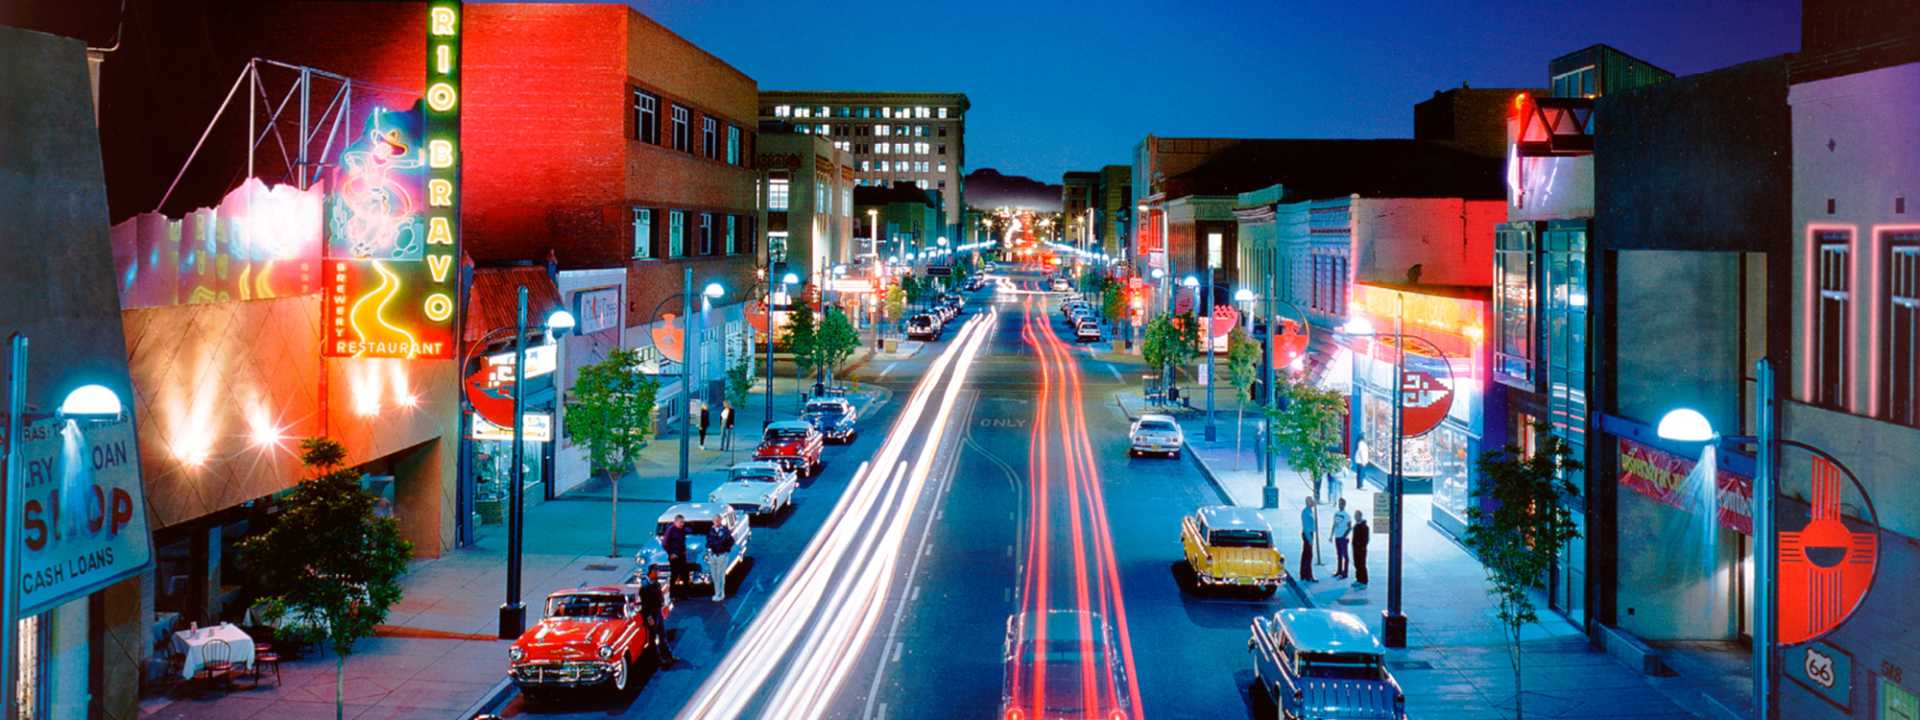 Route 66 in downtown Albuquerque